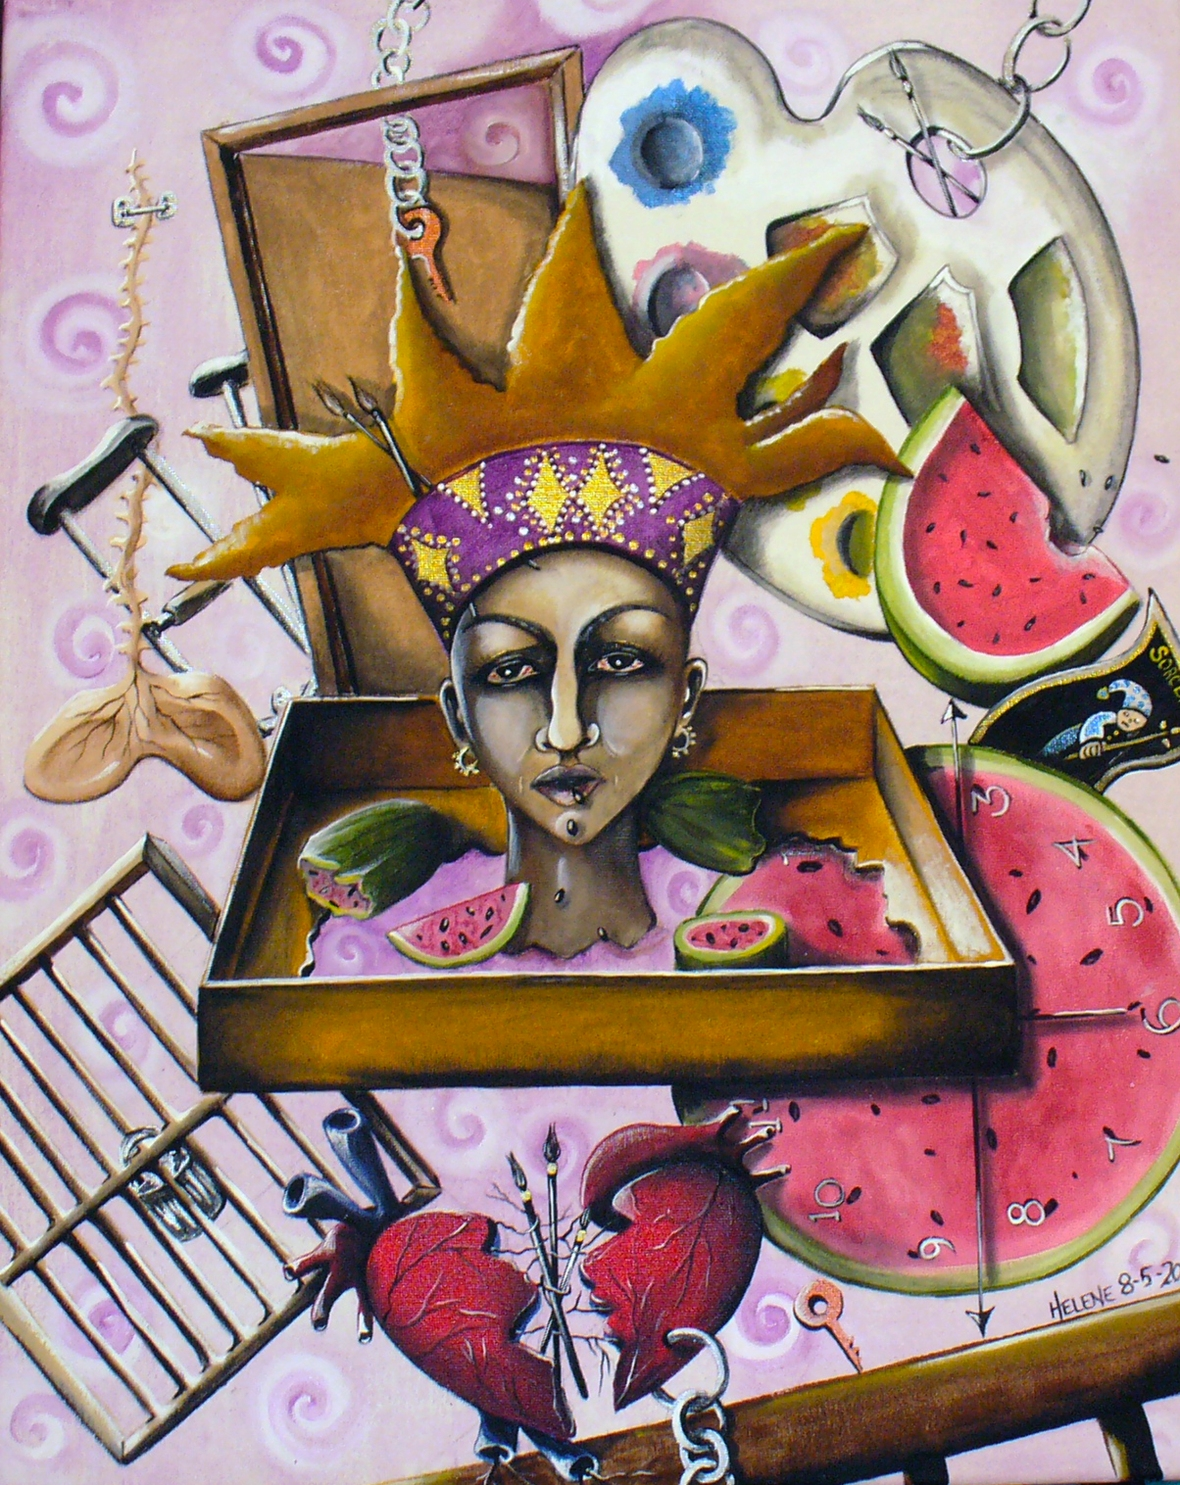 """While Visions of Watermelons Danced in Her Head"" by Helene Ruiz"